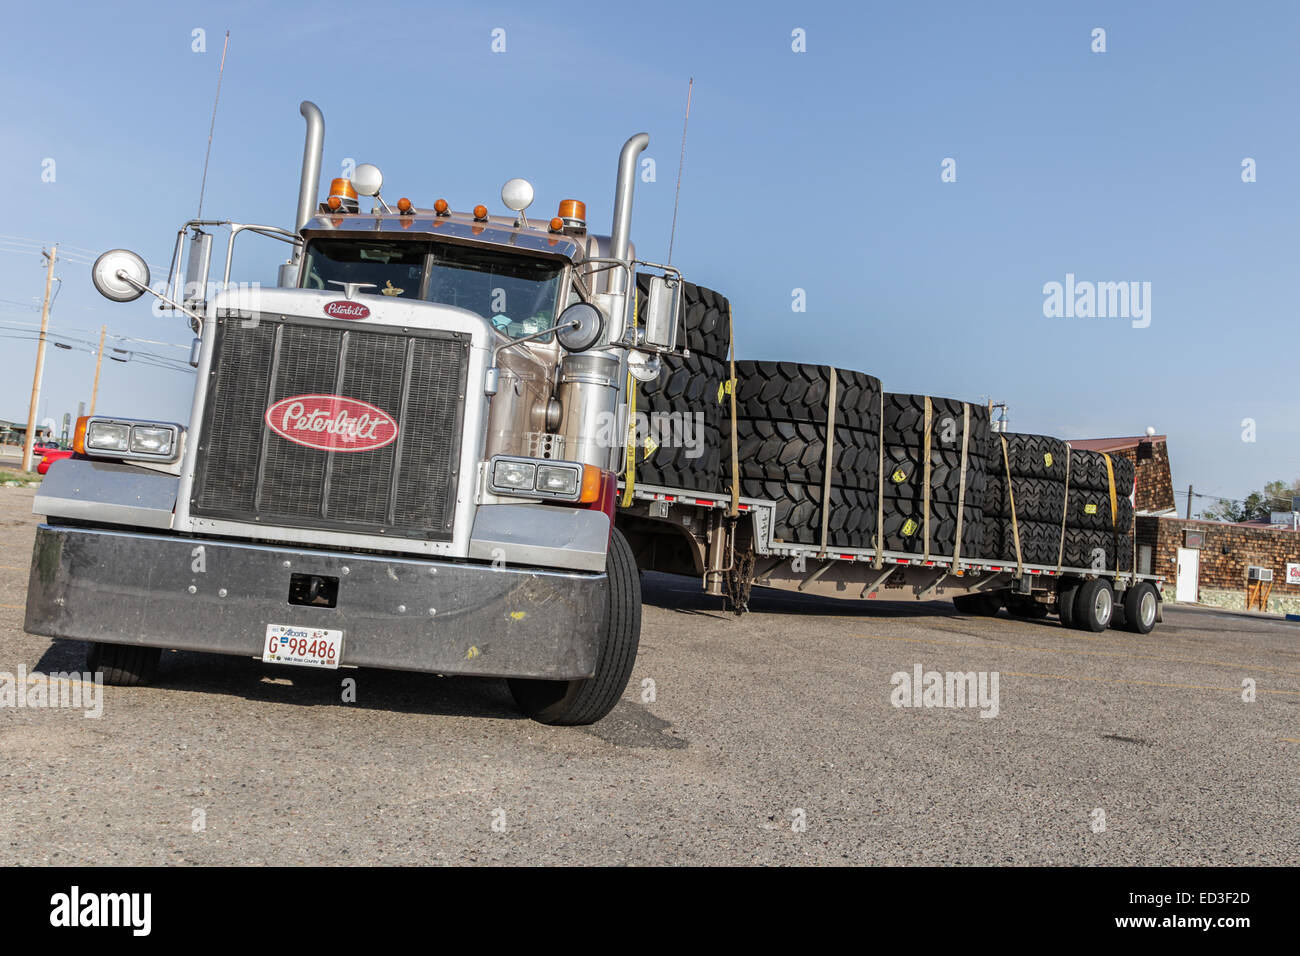 peterbilt-truck-with-load-of-large-minin